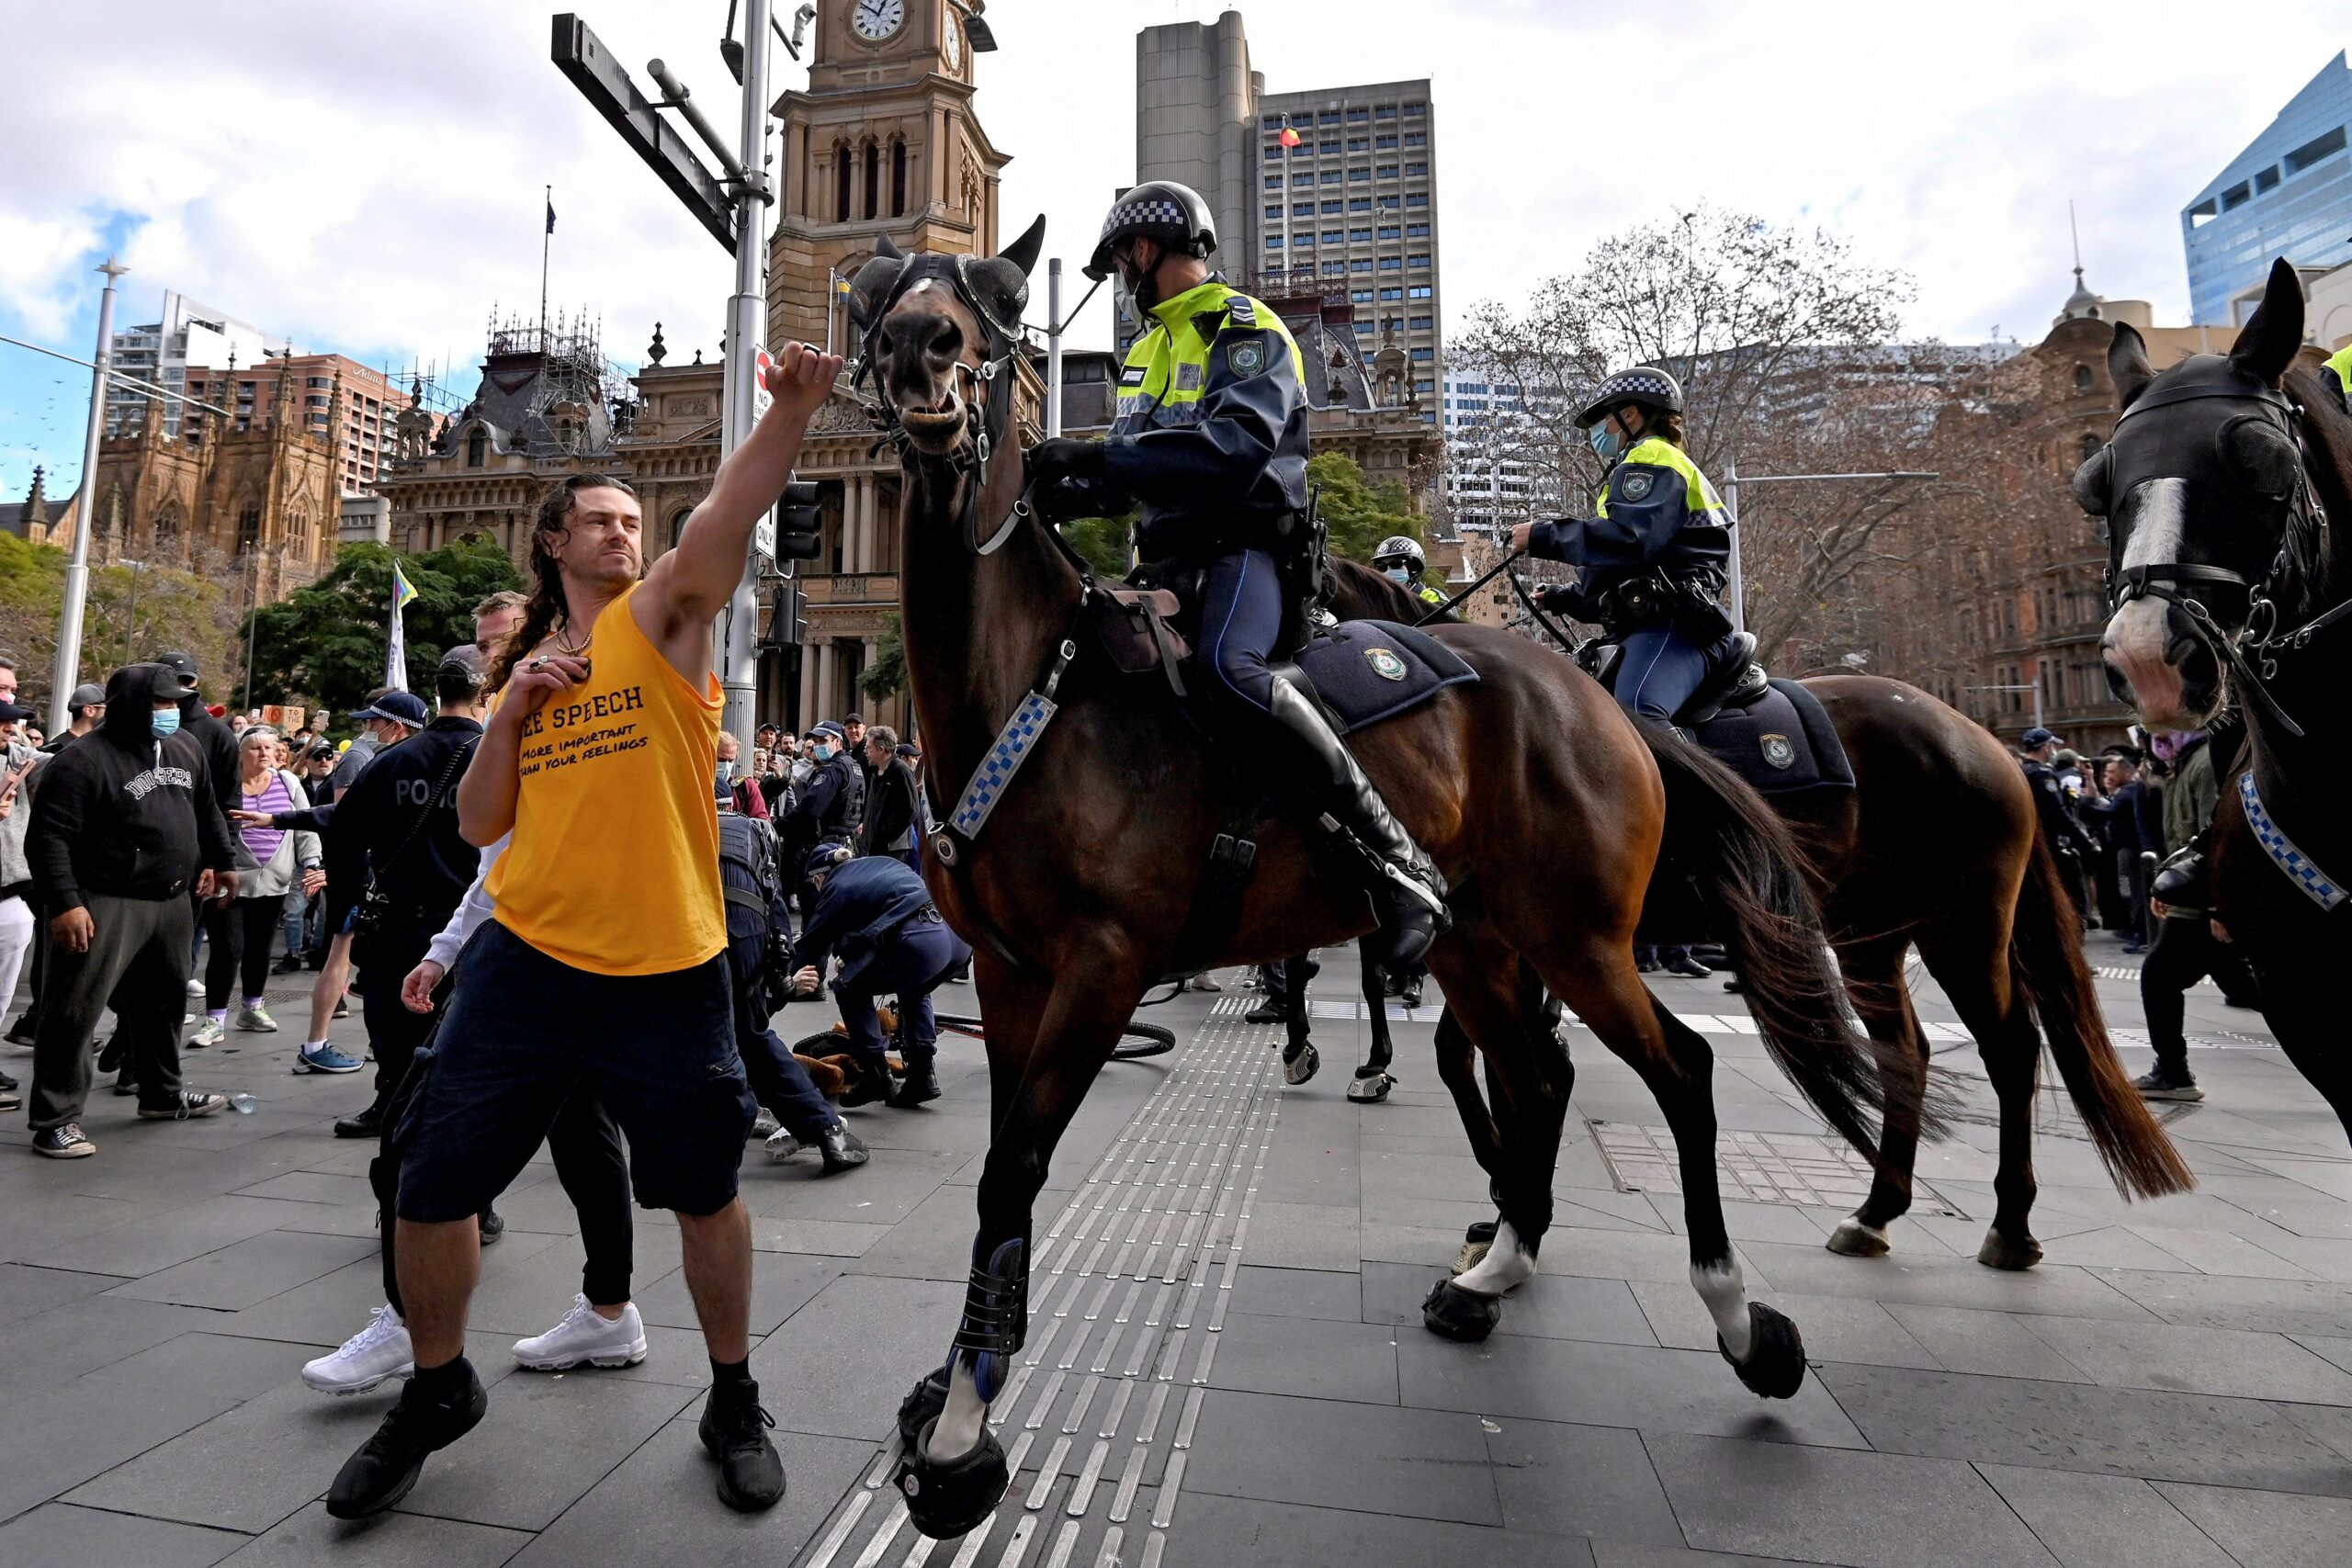 <i>Steven Saphore/AFP/Getty Images</i><br/>A protester tries to push away a police horse in Sydney on July 24